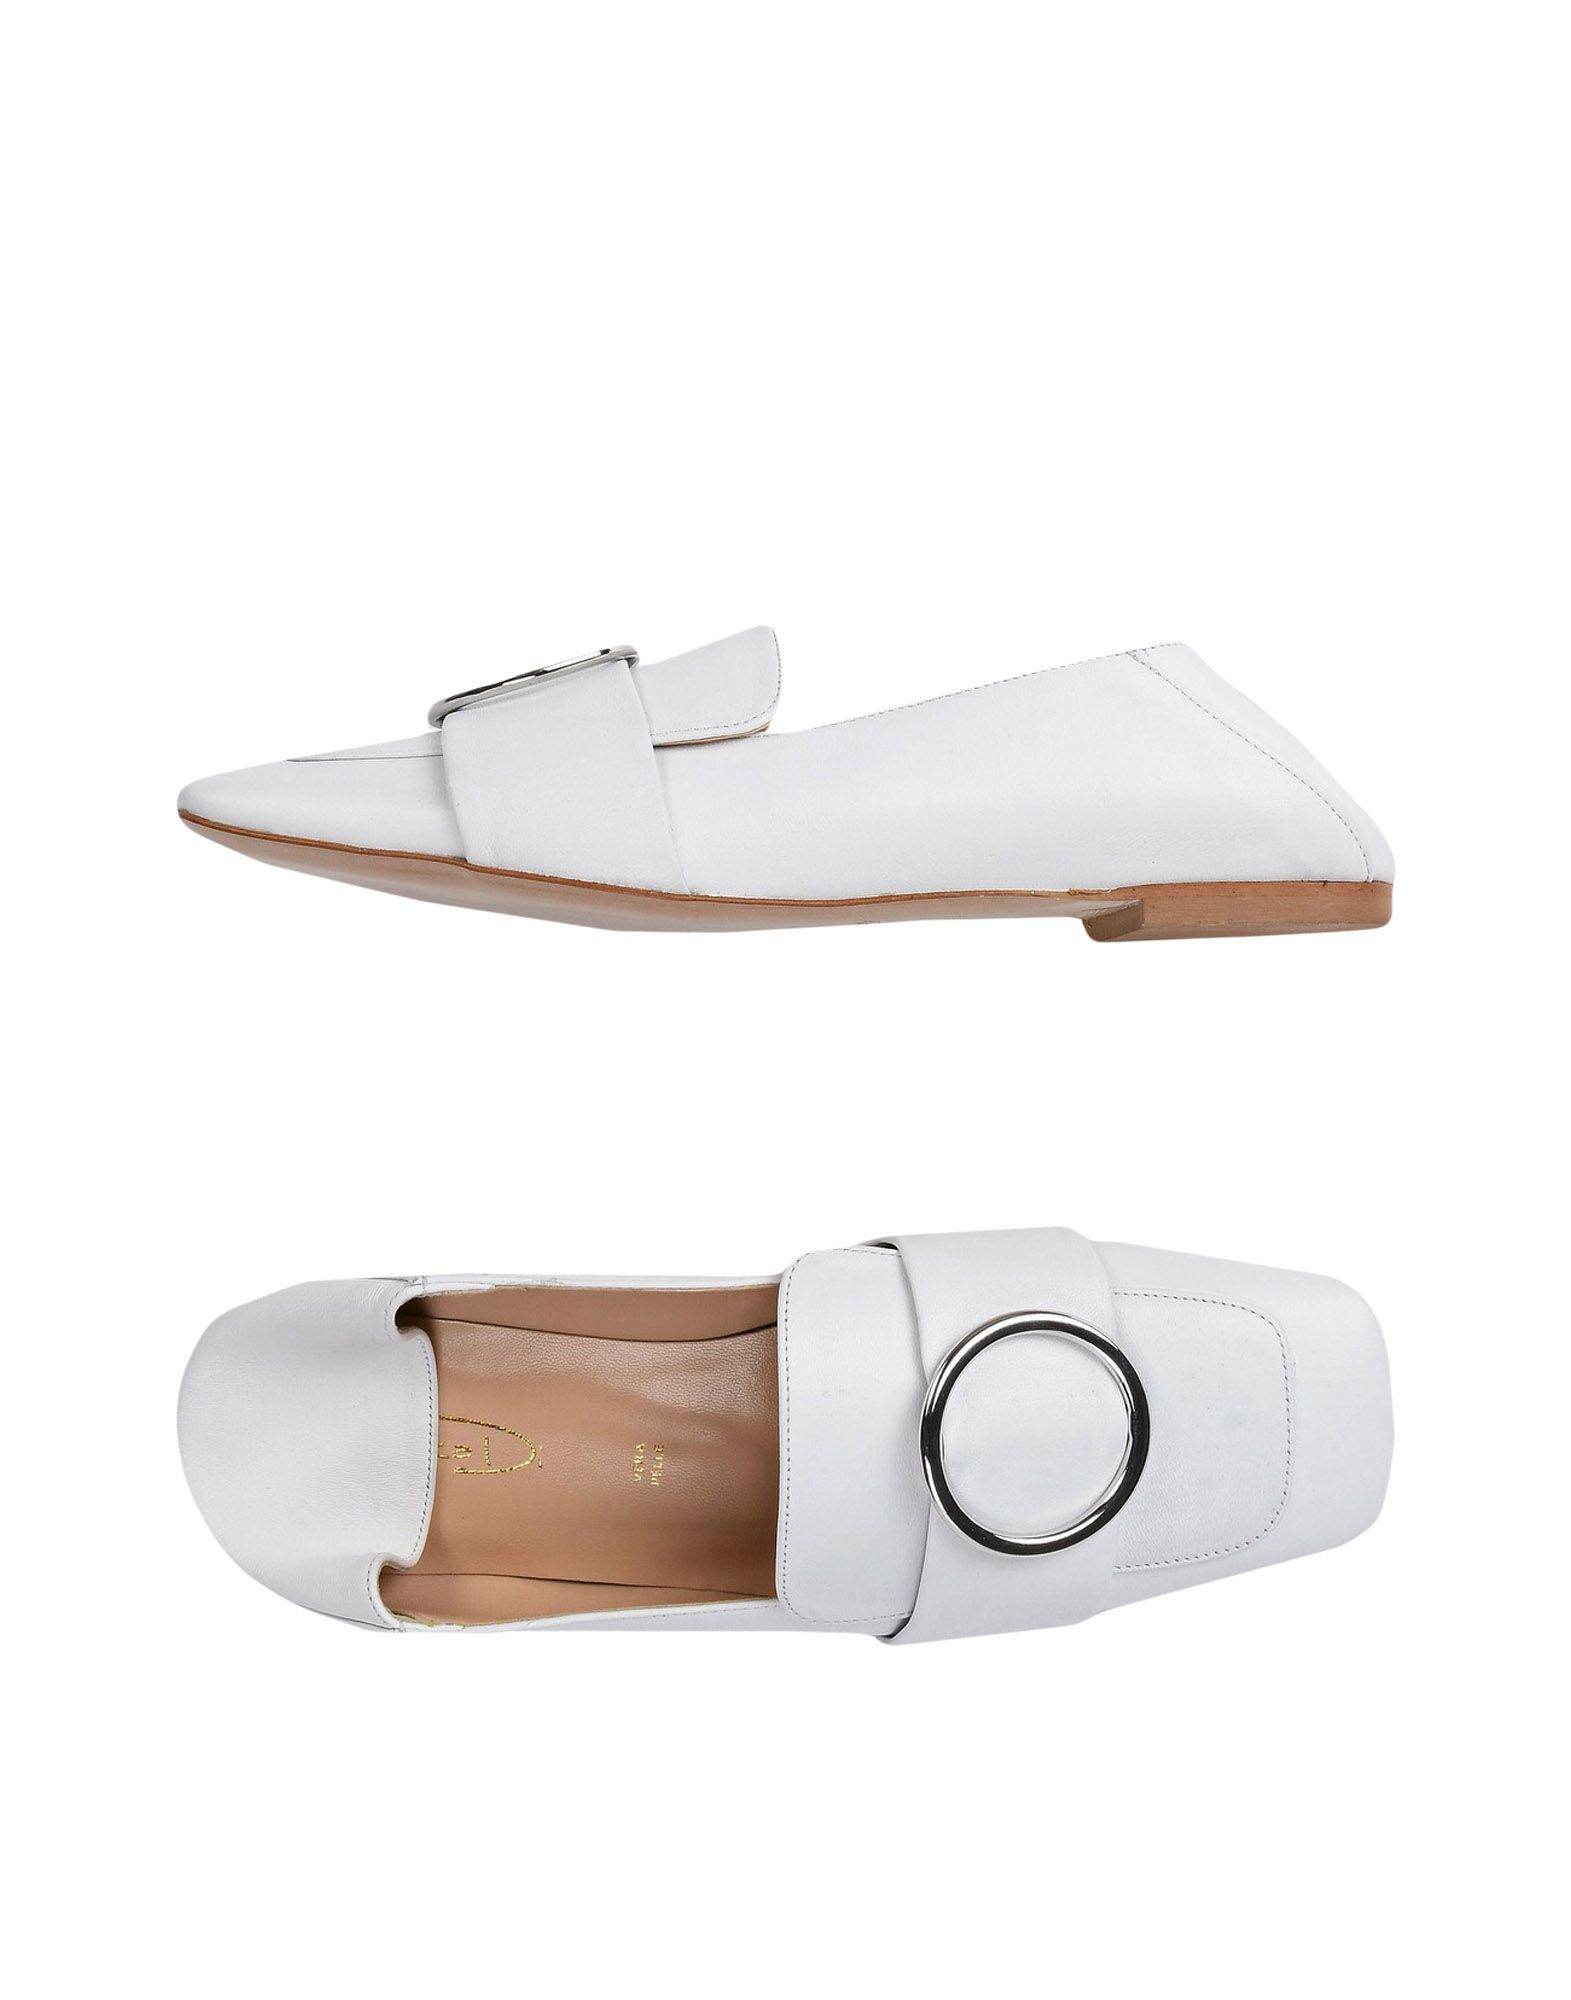 Bianca Di Loafers - Women Bianca Di Loafers online on 11441758AE  United Kingdom - 11441758AE on ed2e74